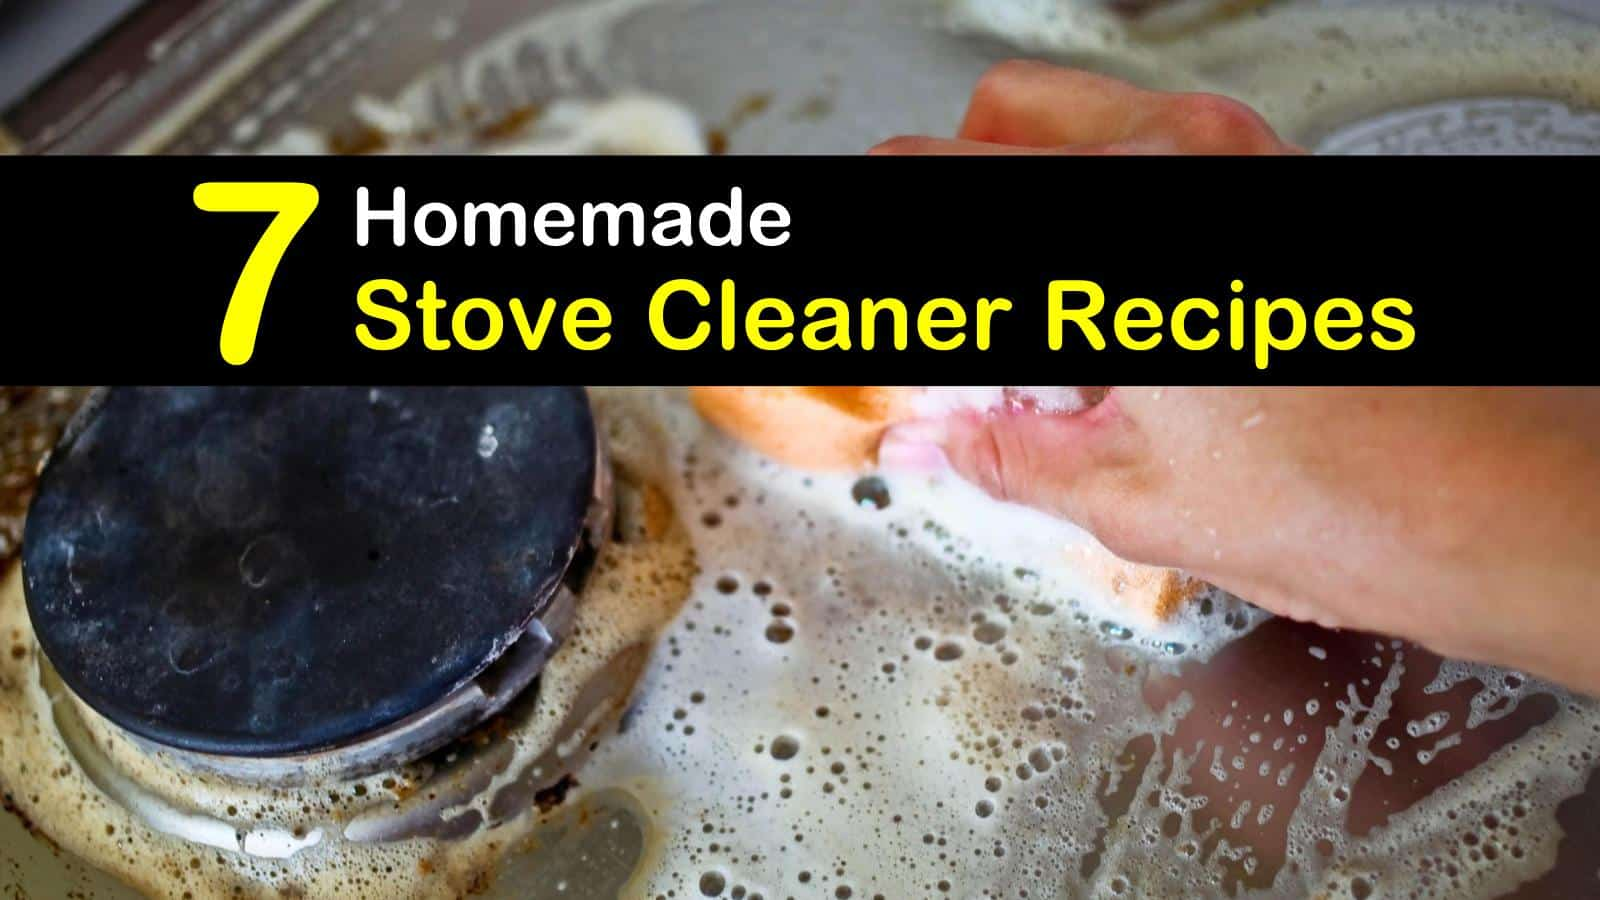 homemade stove cleaner titleimg1